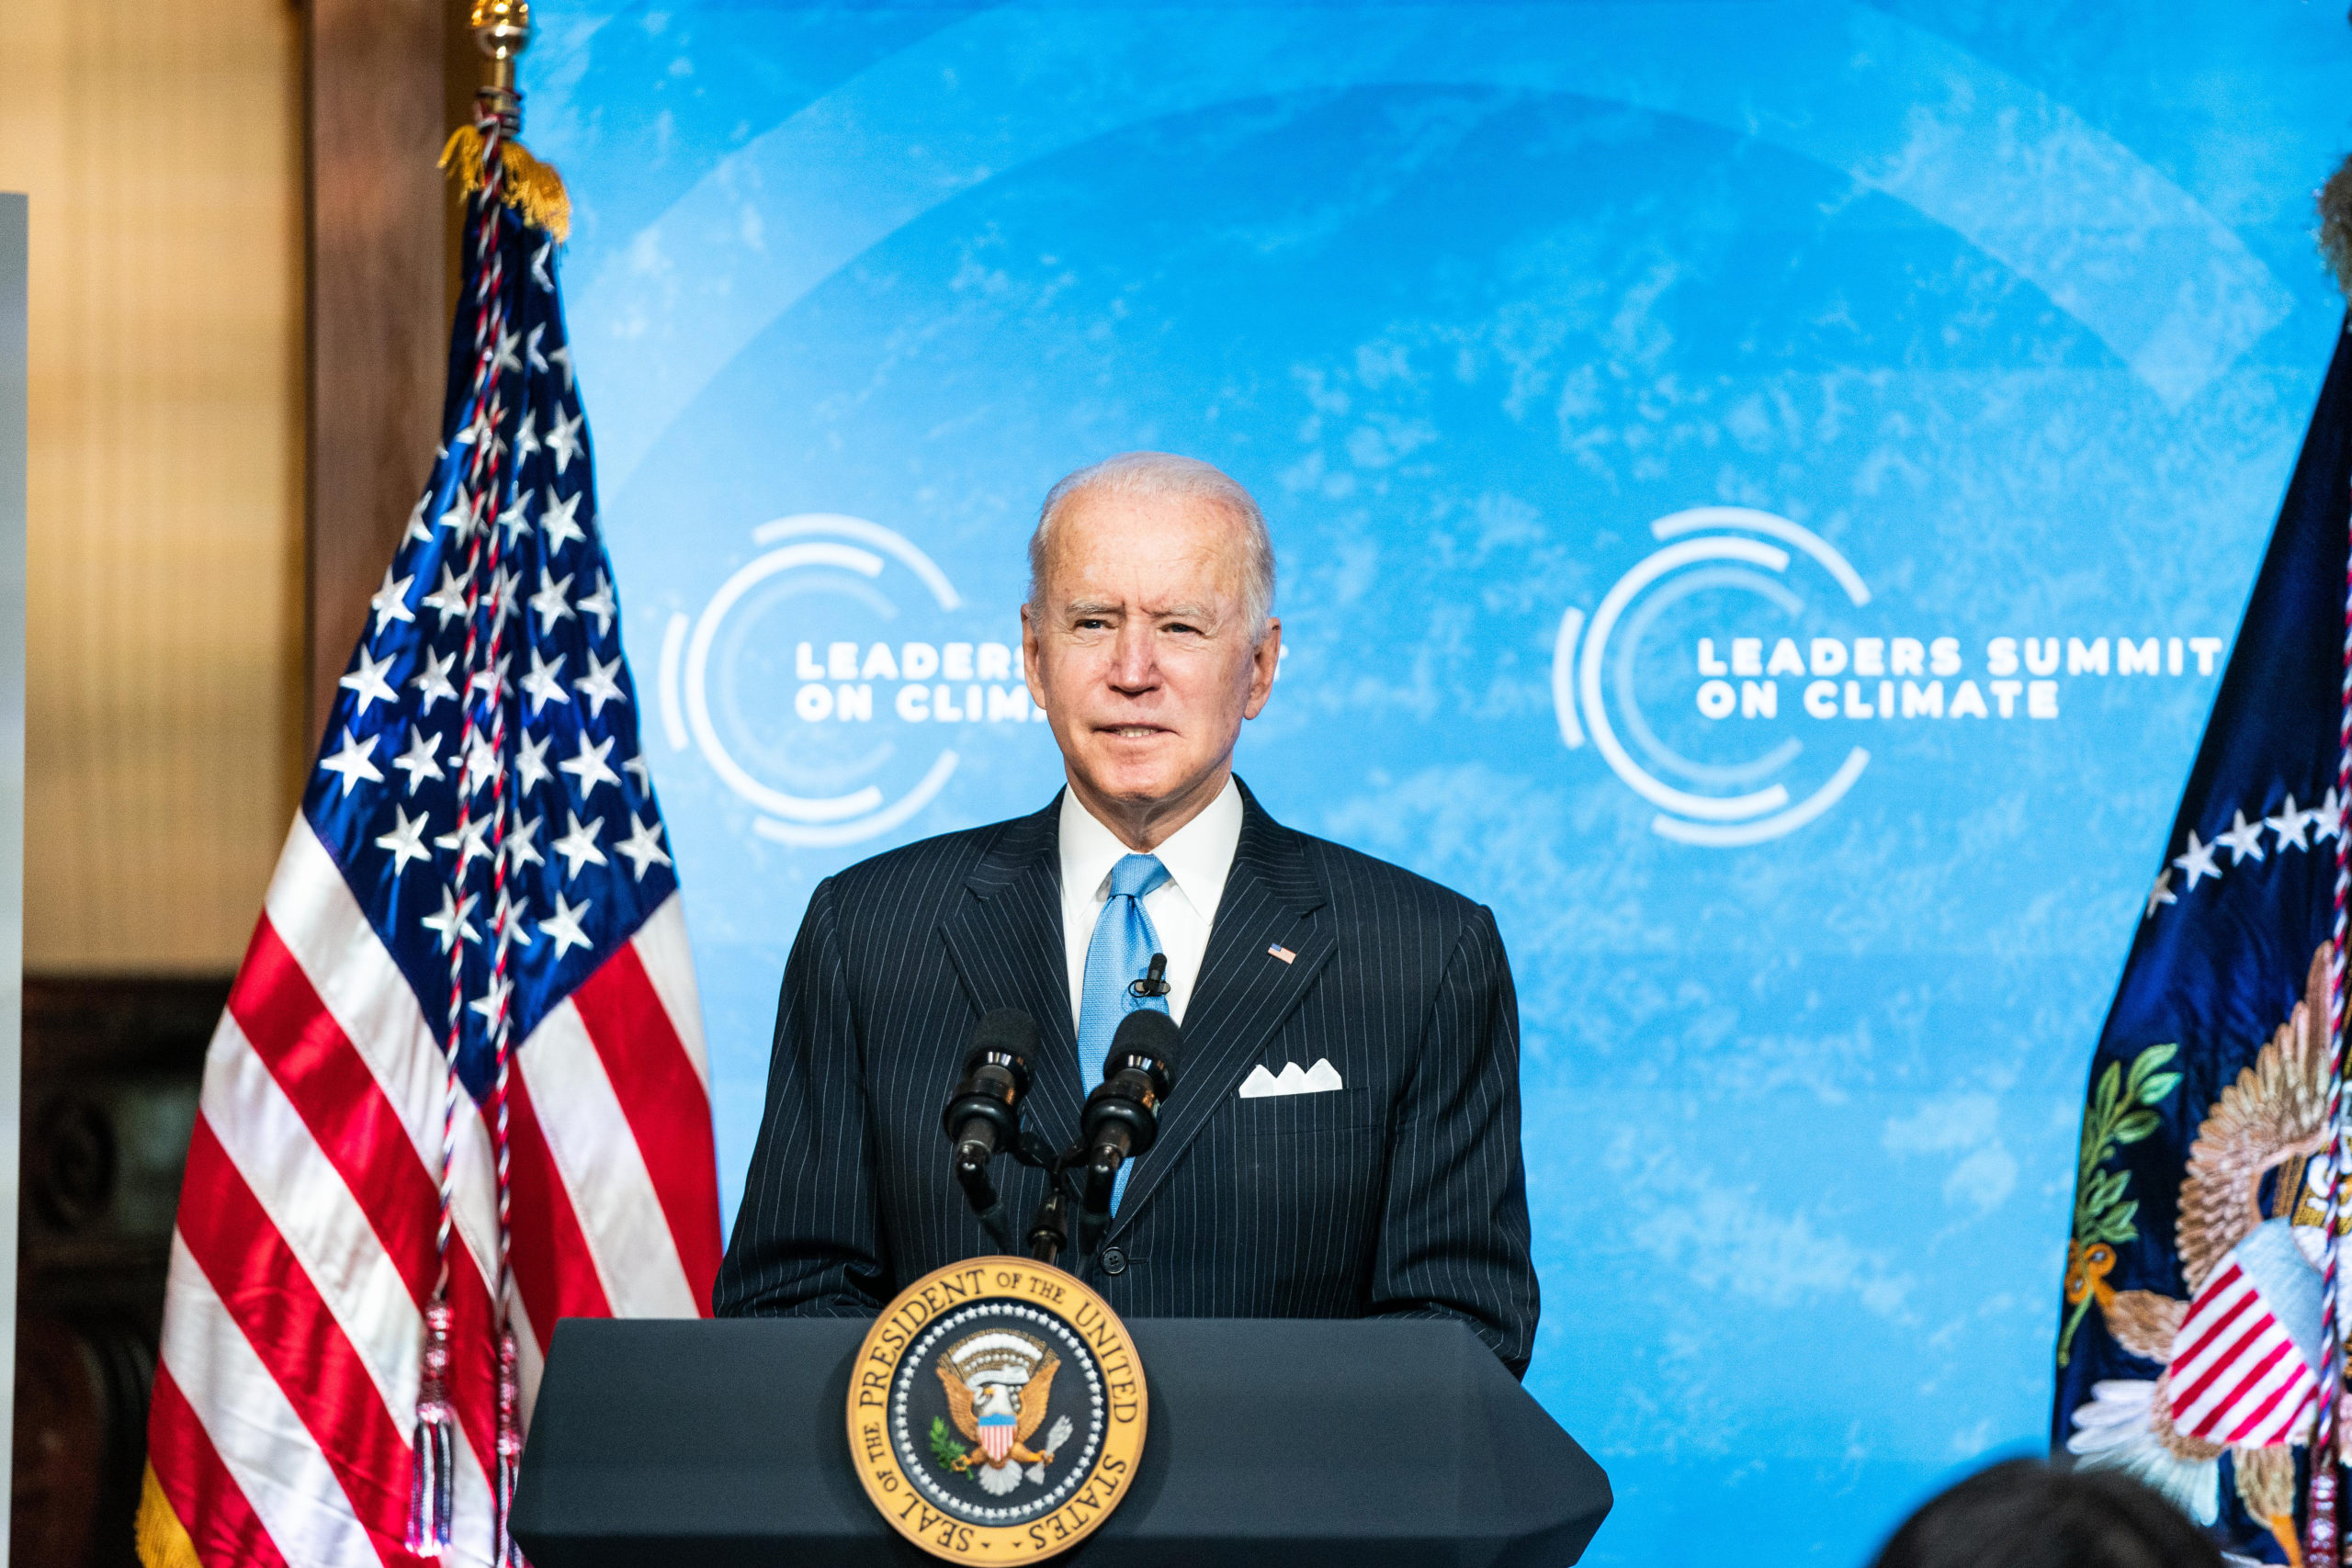 WASHINGTON, DC - APRIL 23: U.S. President Joe Biden delivers remarks during day 2 of the virtual Leaders Summit on Climate at the East Room of the White House April 23, 2021 in Washington, DC. Biden pledged to cut greenhouse gas emissions by half by 2030. (Photo by Anna Moneymaker-Pool/Getty Images)